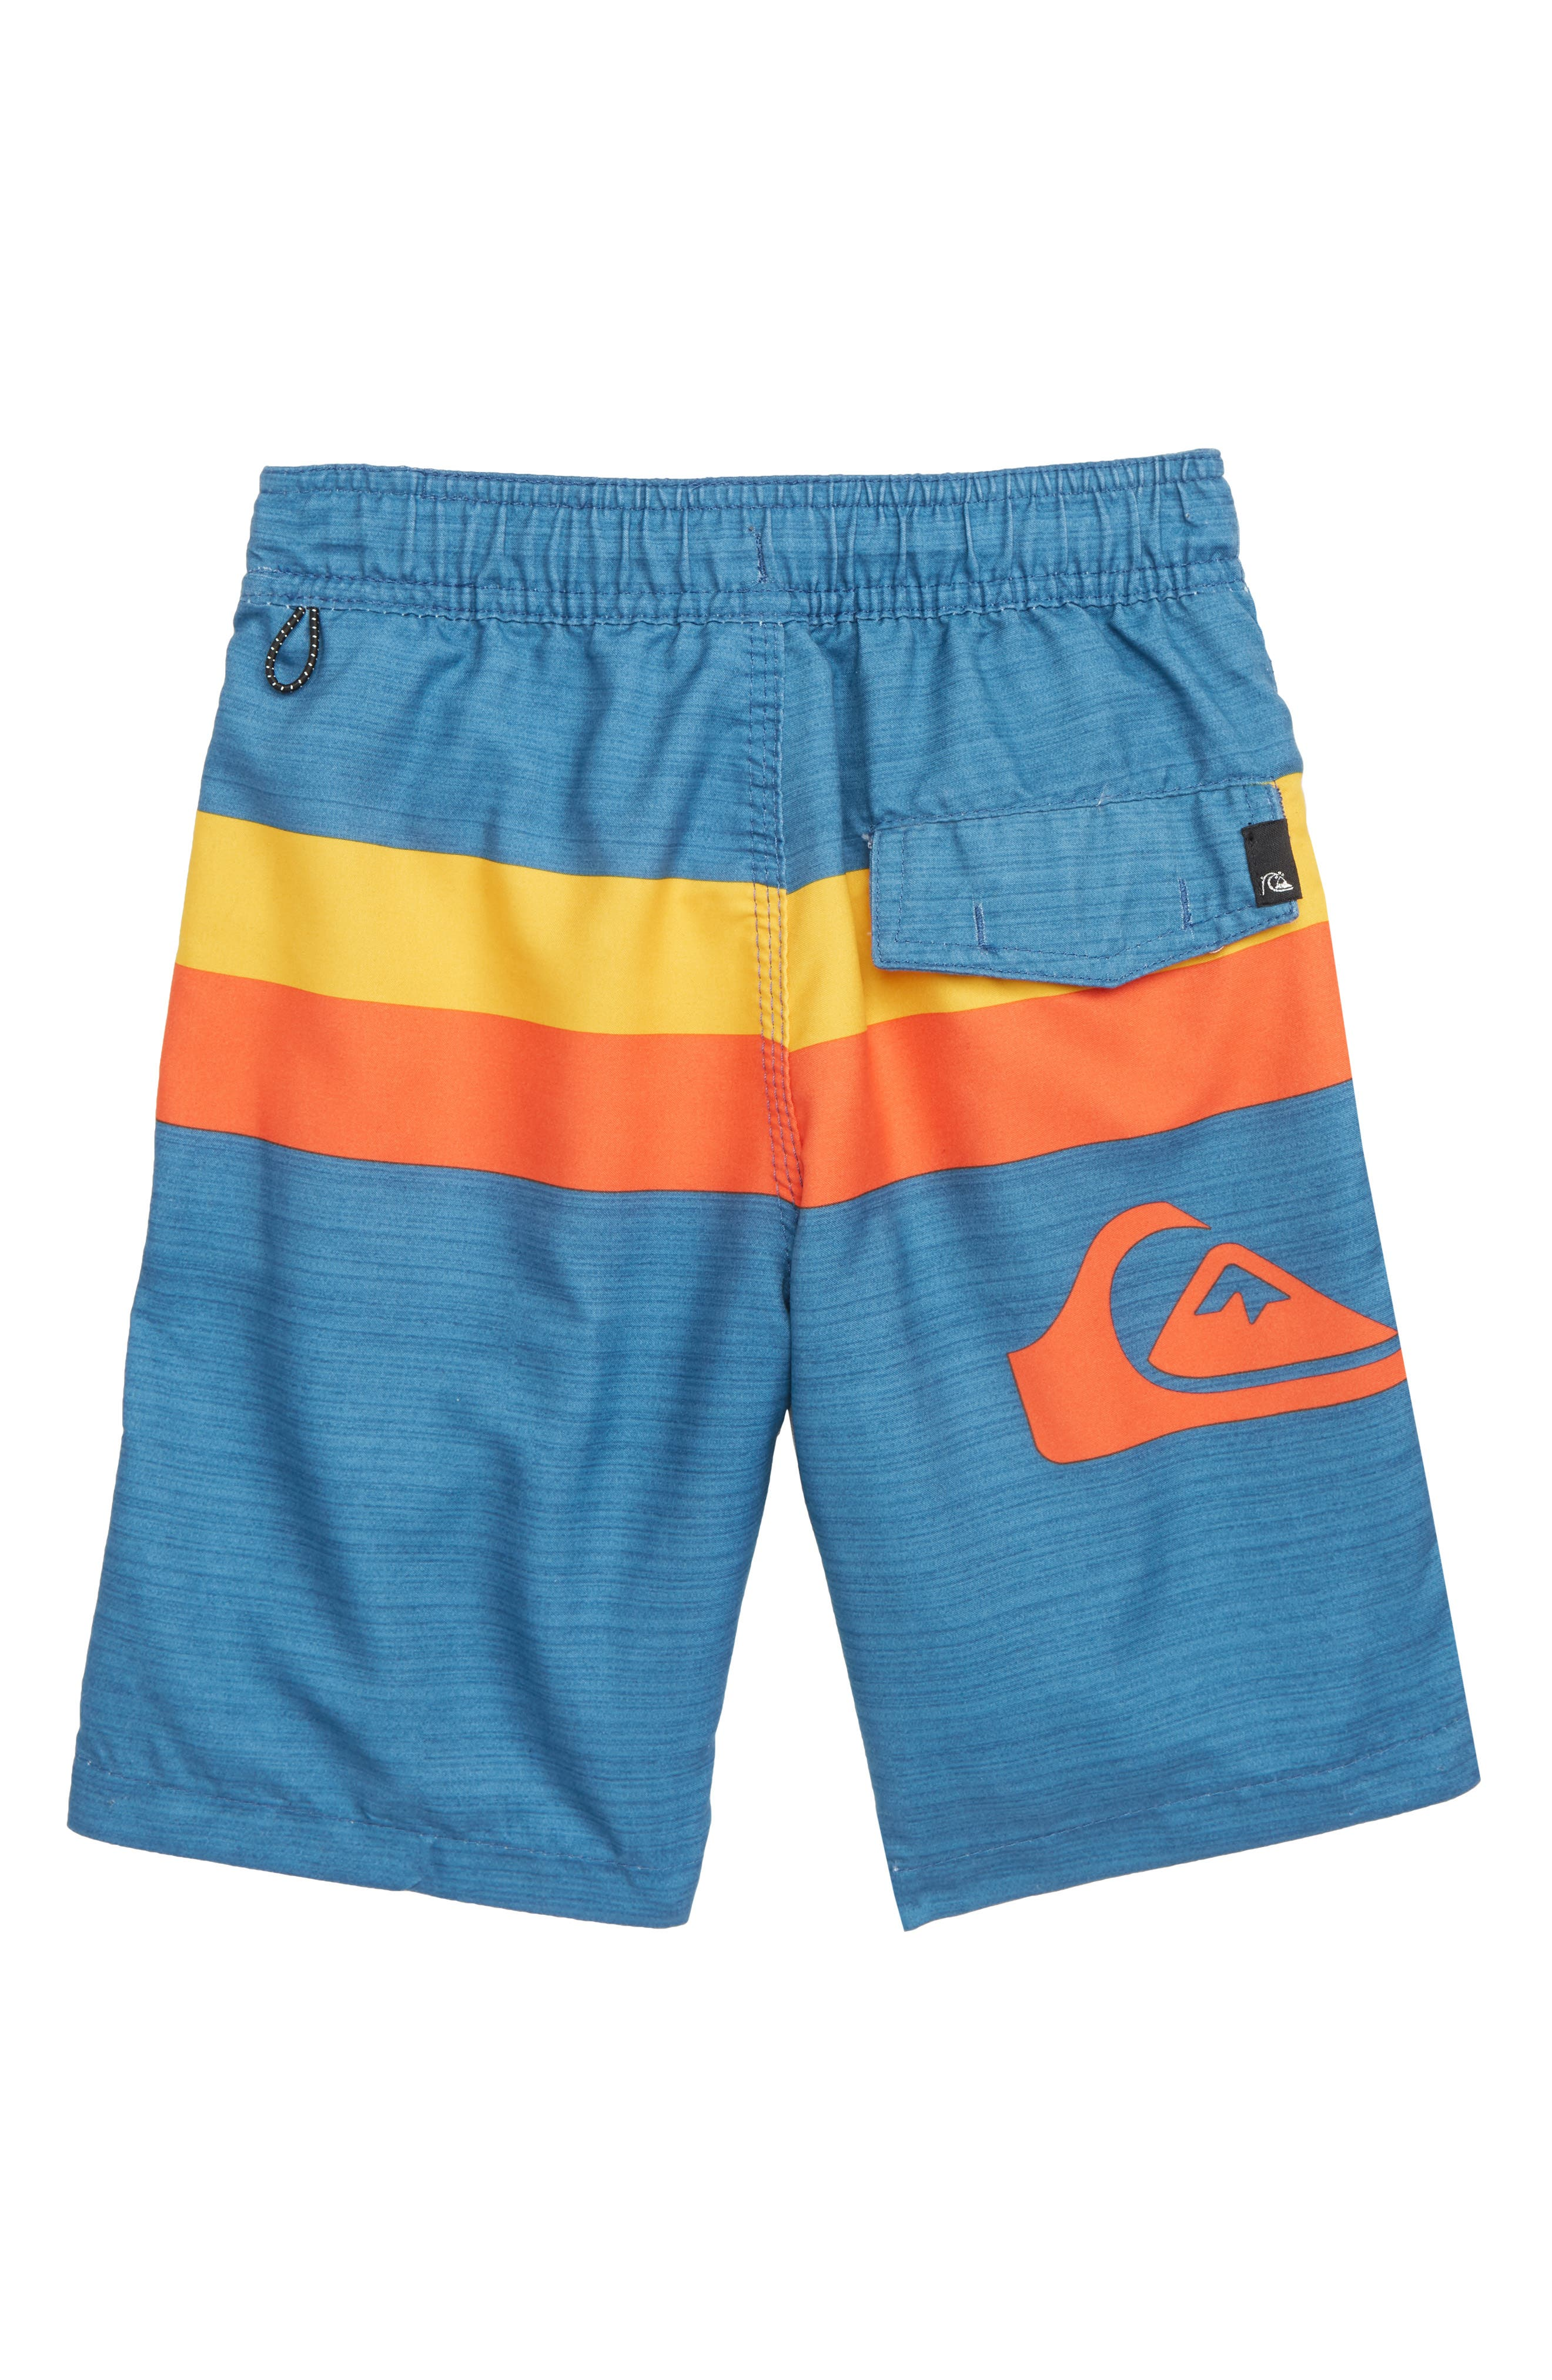 Mystery Bus Volley Shorts,                             Alternate thumbnail 2, color,                             STELLAR